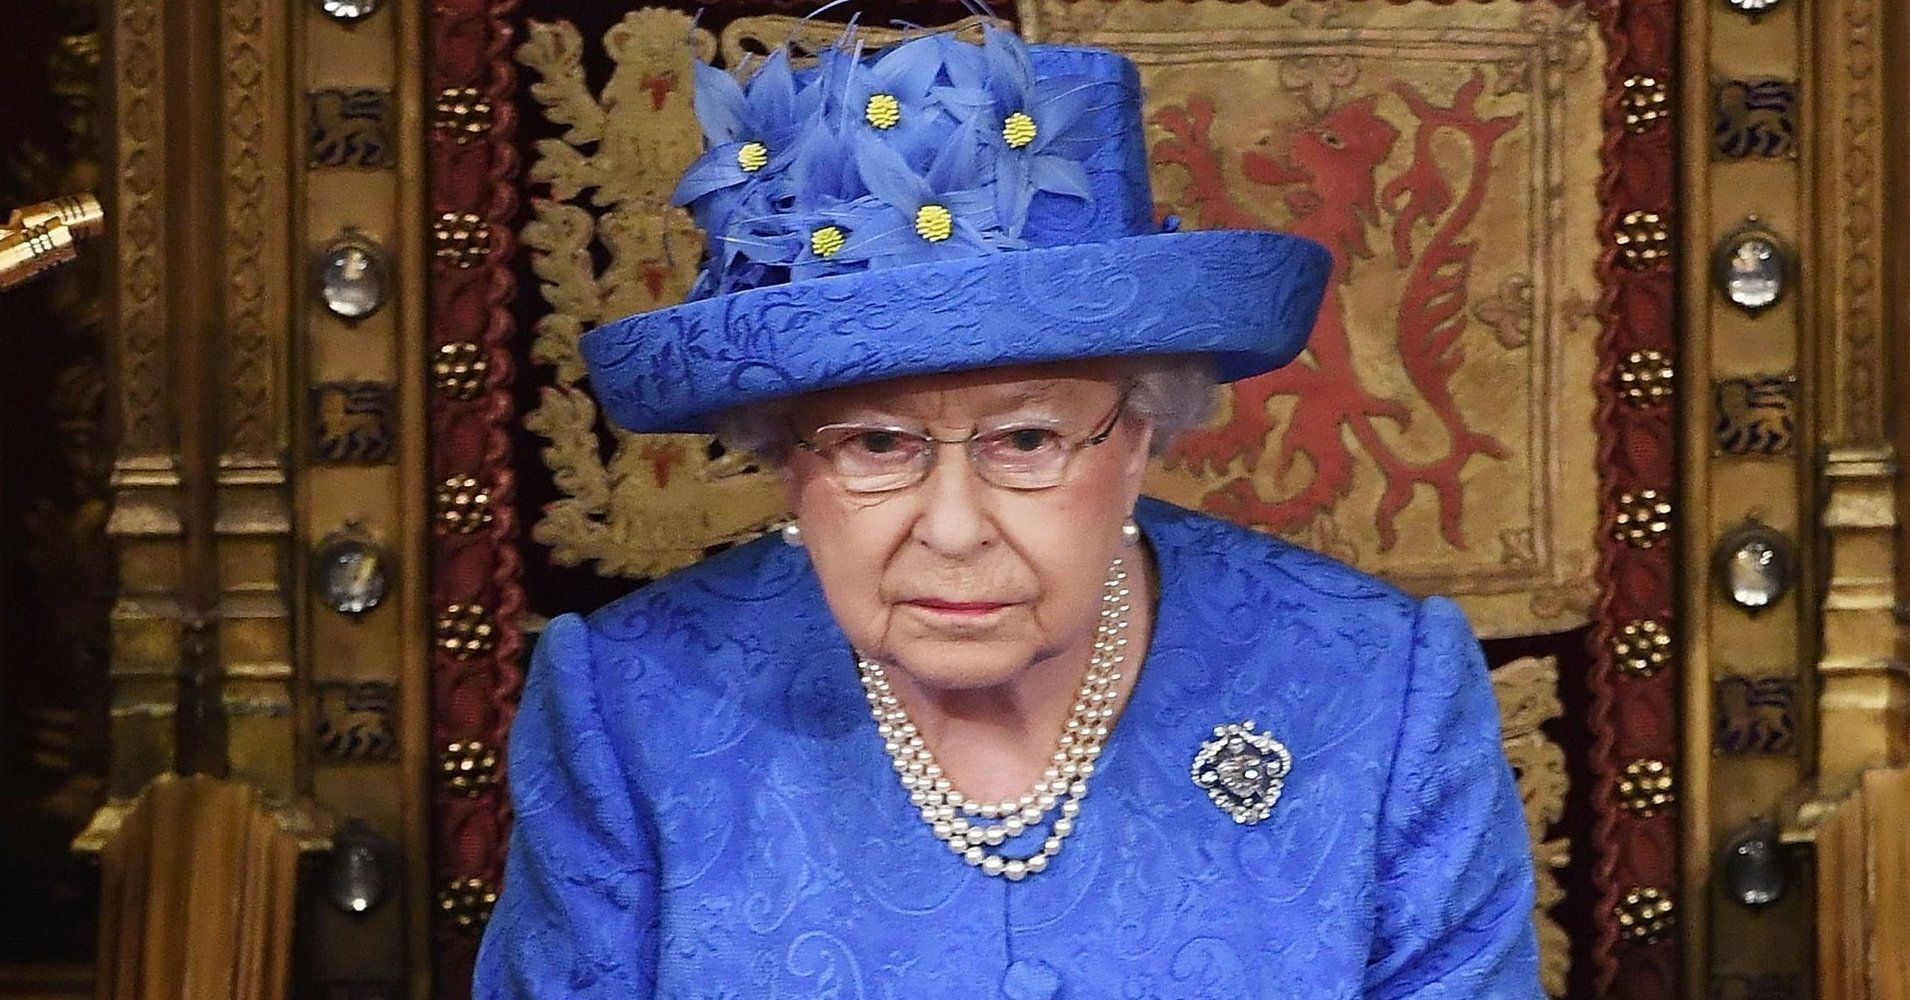 People Are Convinced The Queen's Hat Sends A Secret Message #queenshats